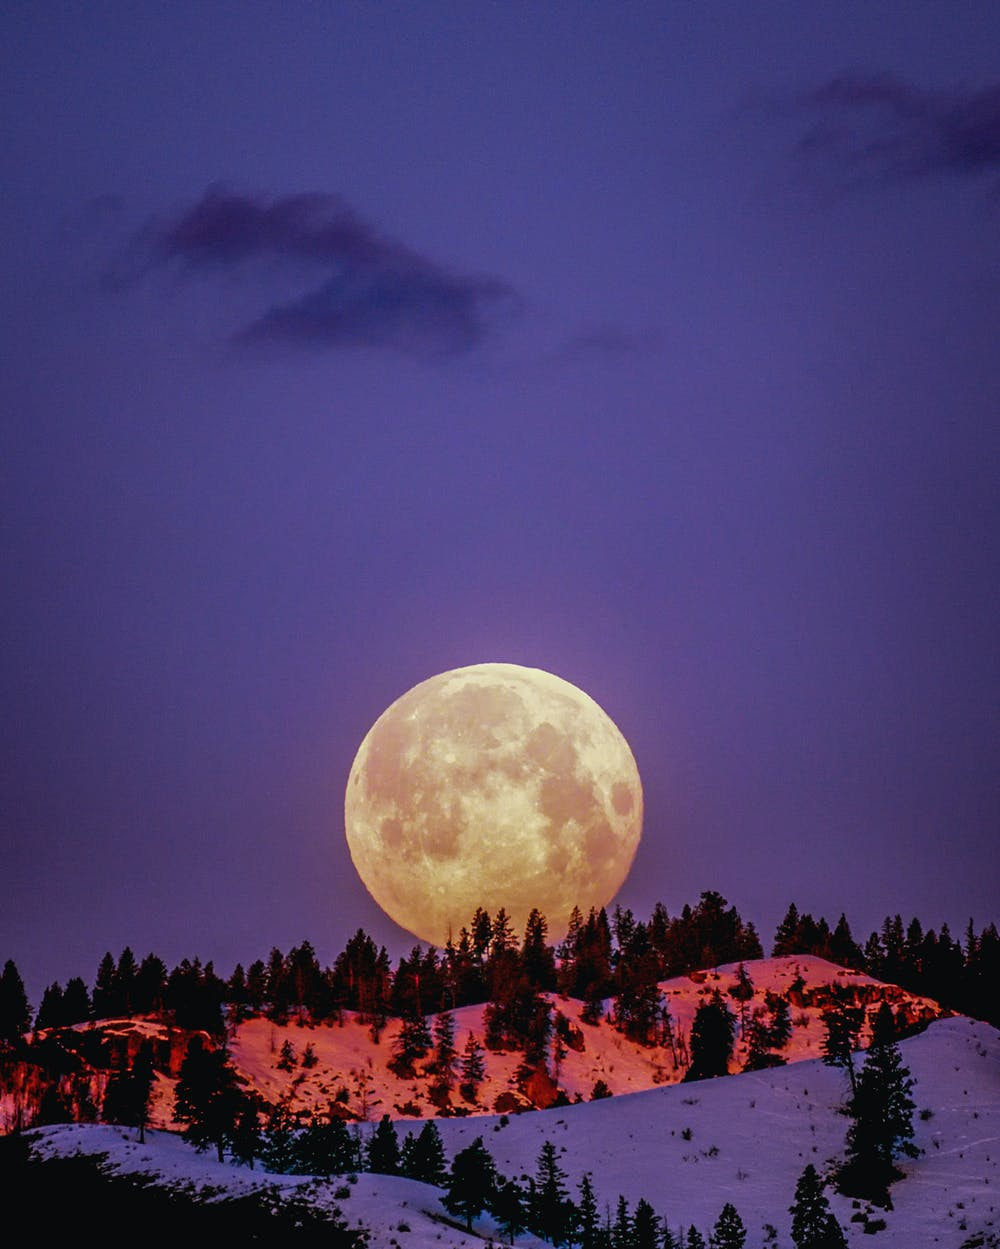 Moon over snowcapped mountain. | Photo: Pexels